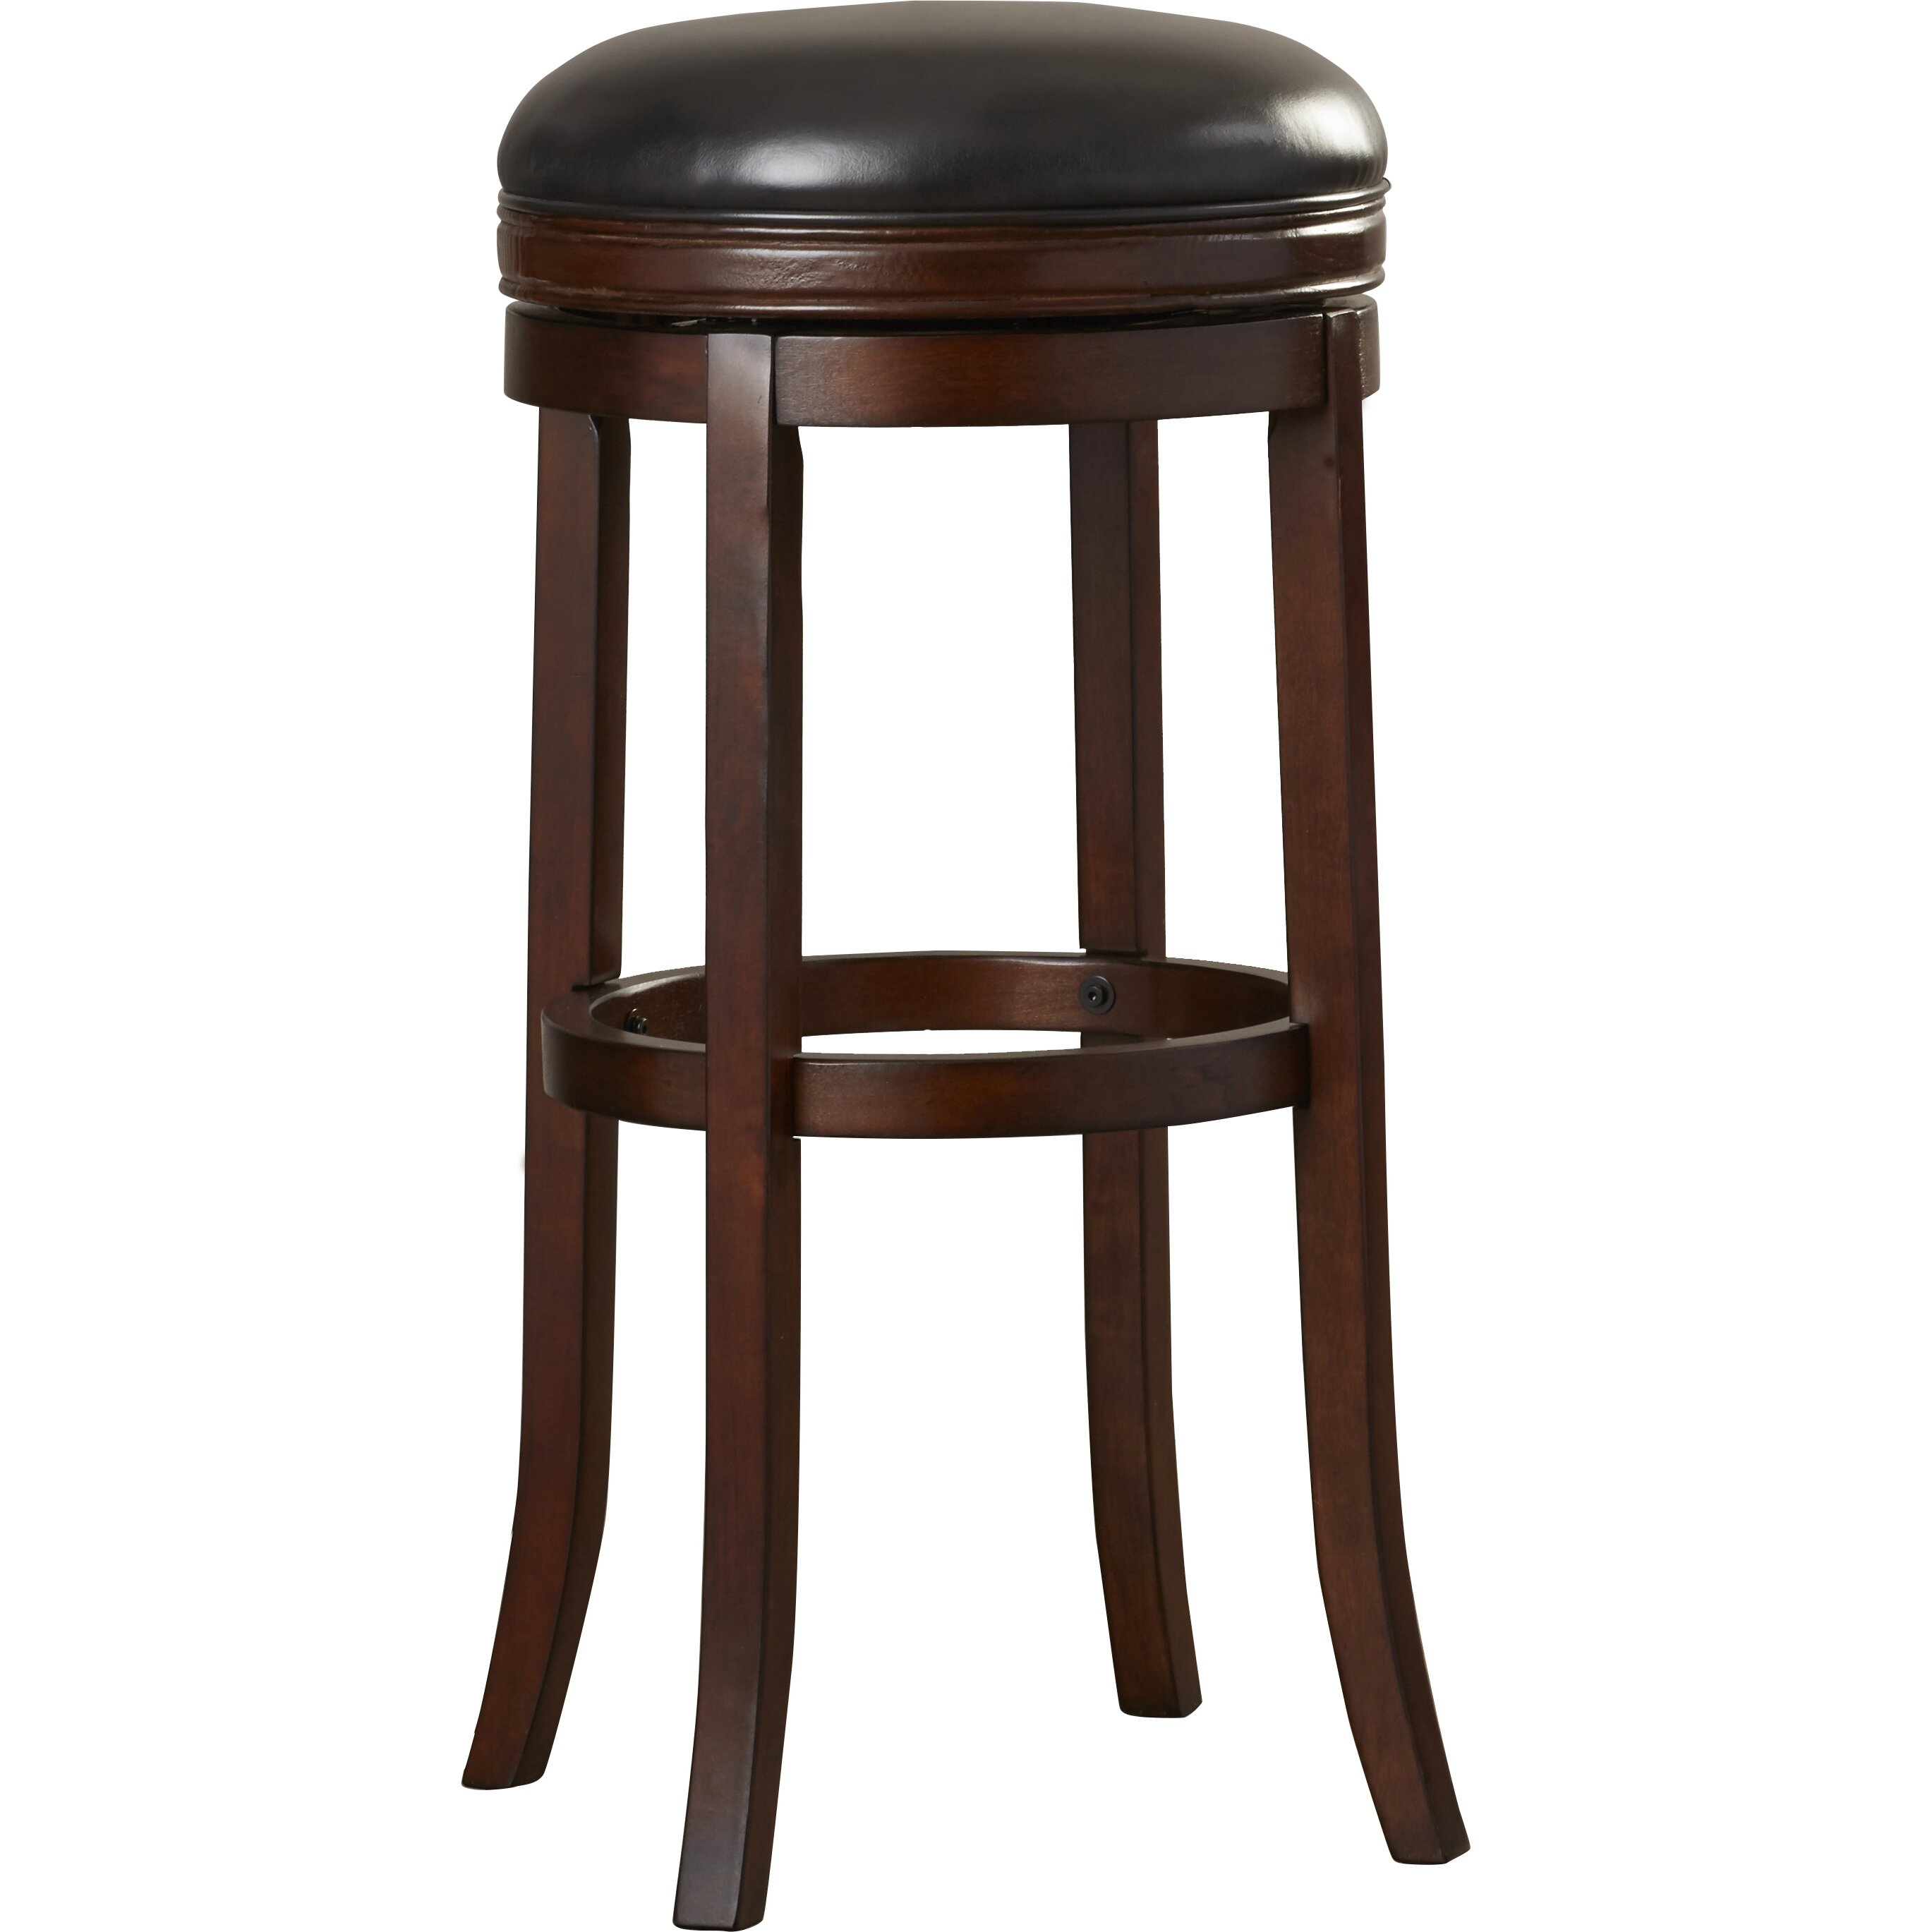 Darby Home Co Mcmullin 34 Quot Swivel Bar Stool Amp Reviews